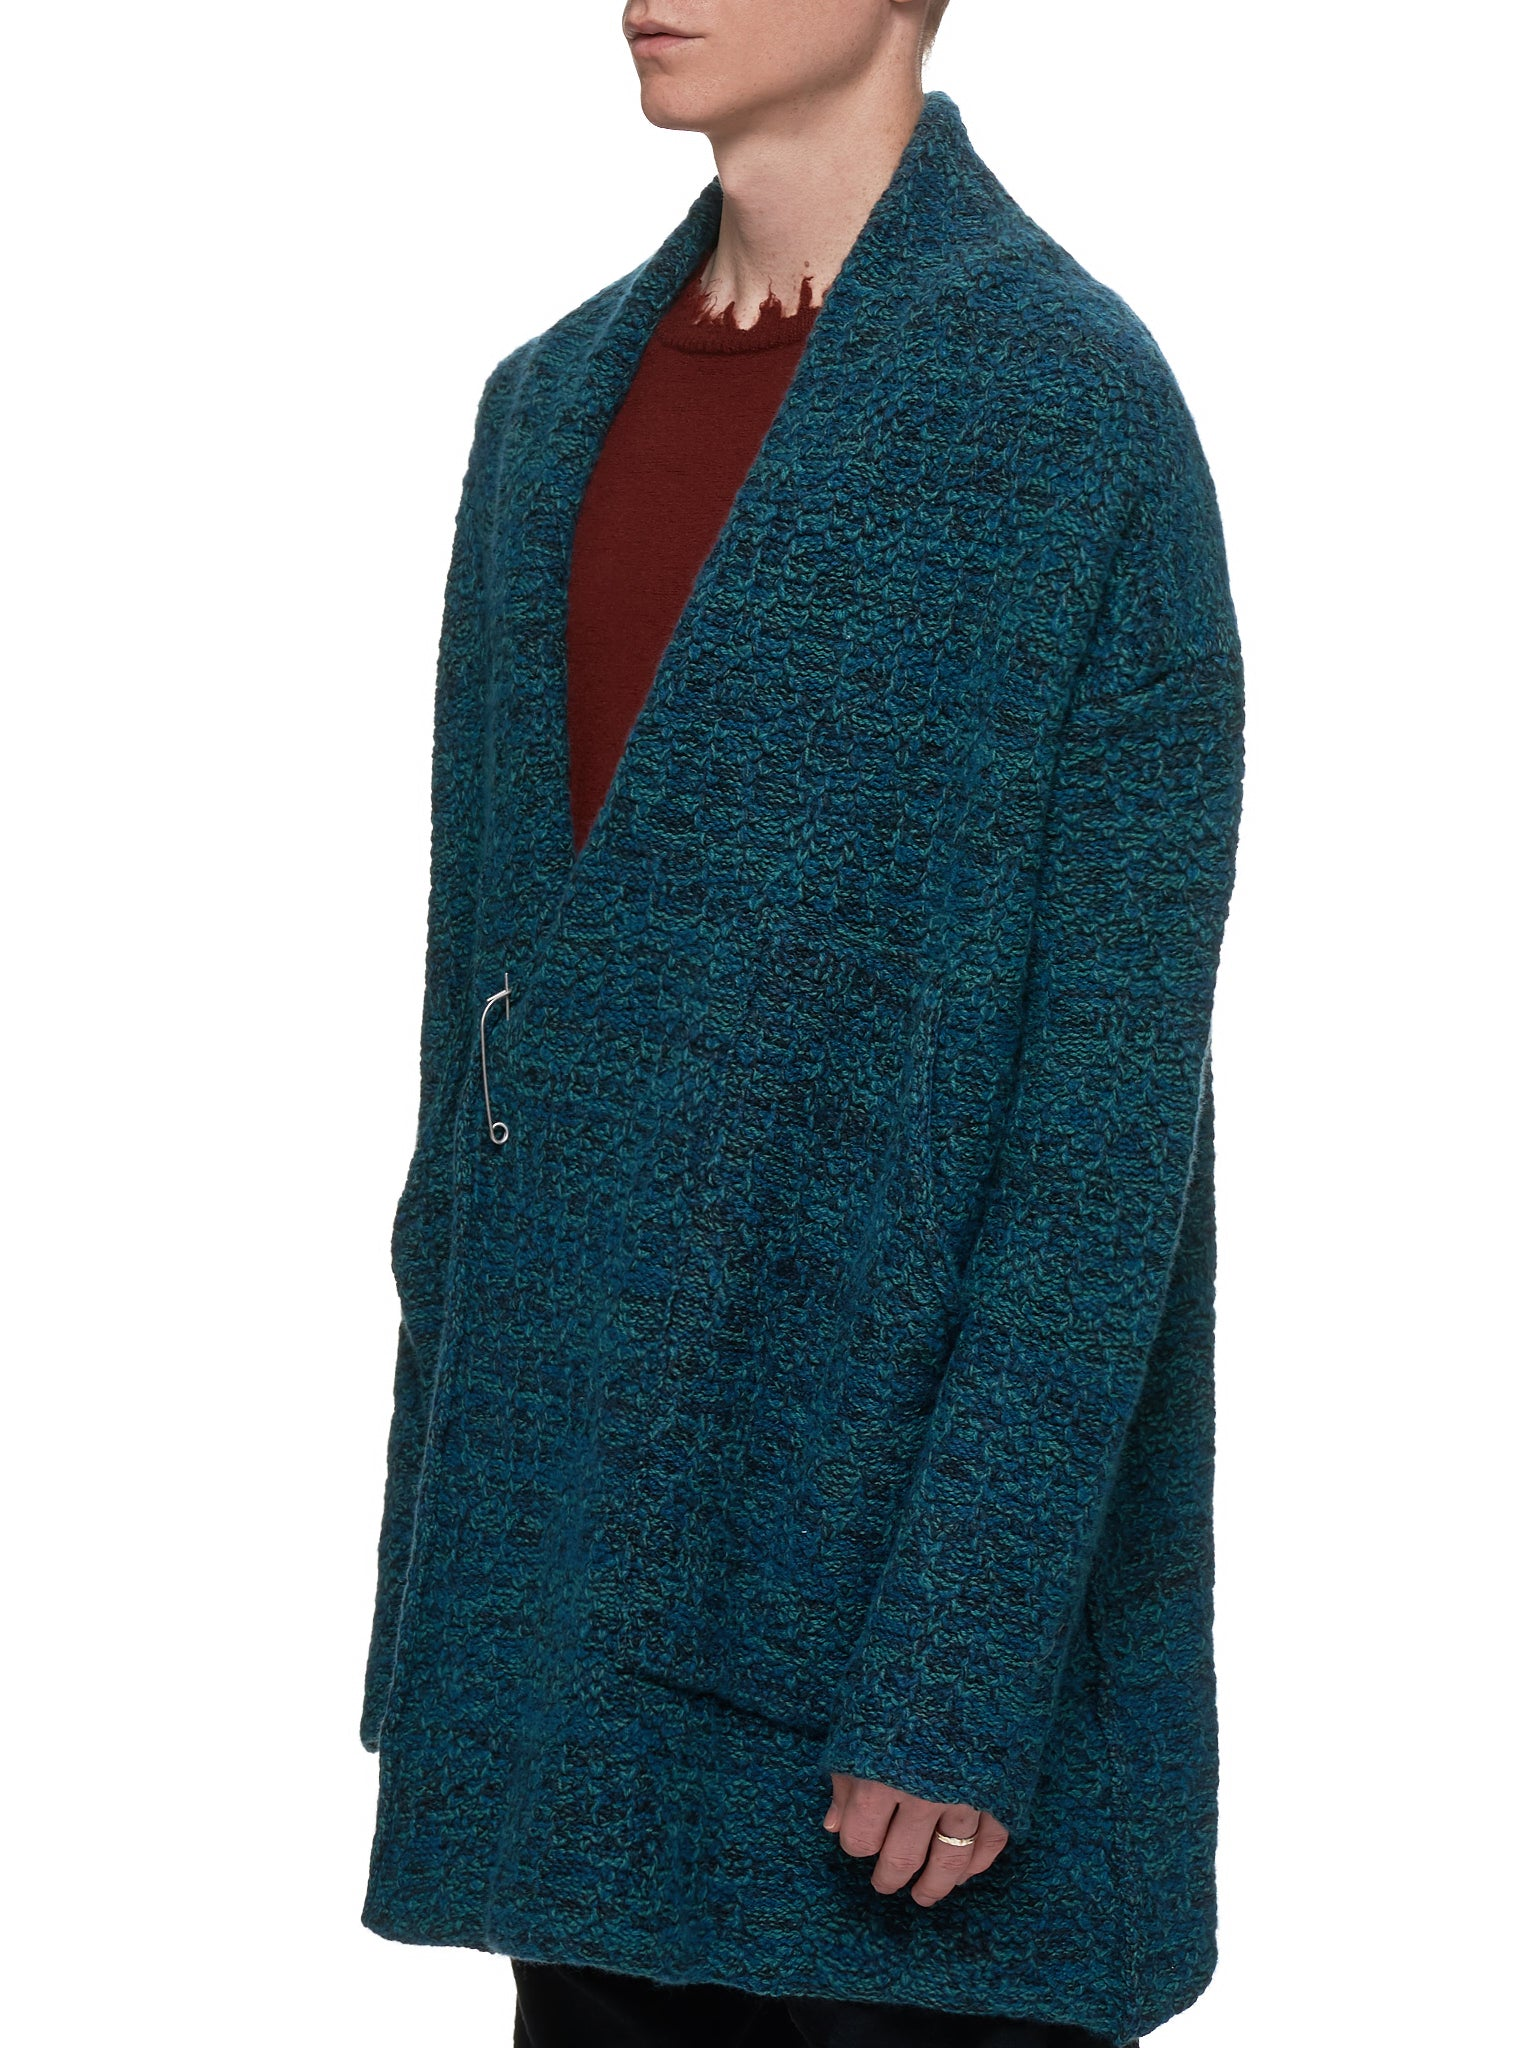 Daniel Andresen Cardigan - Hlorenzo Side